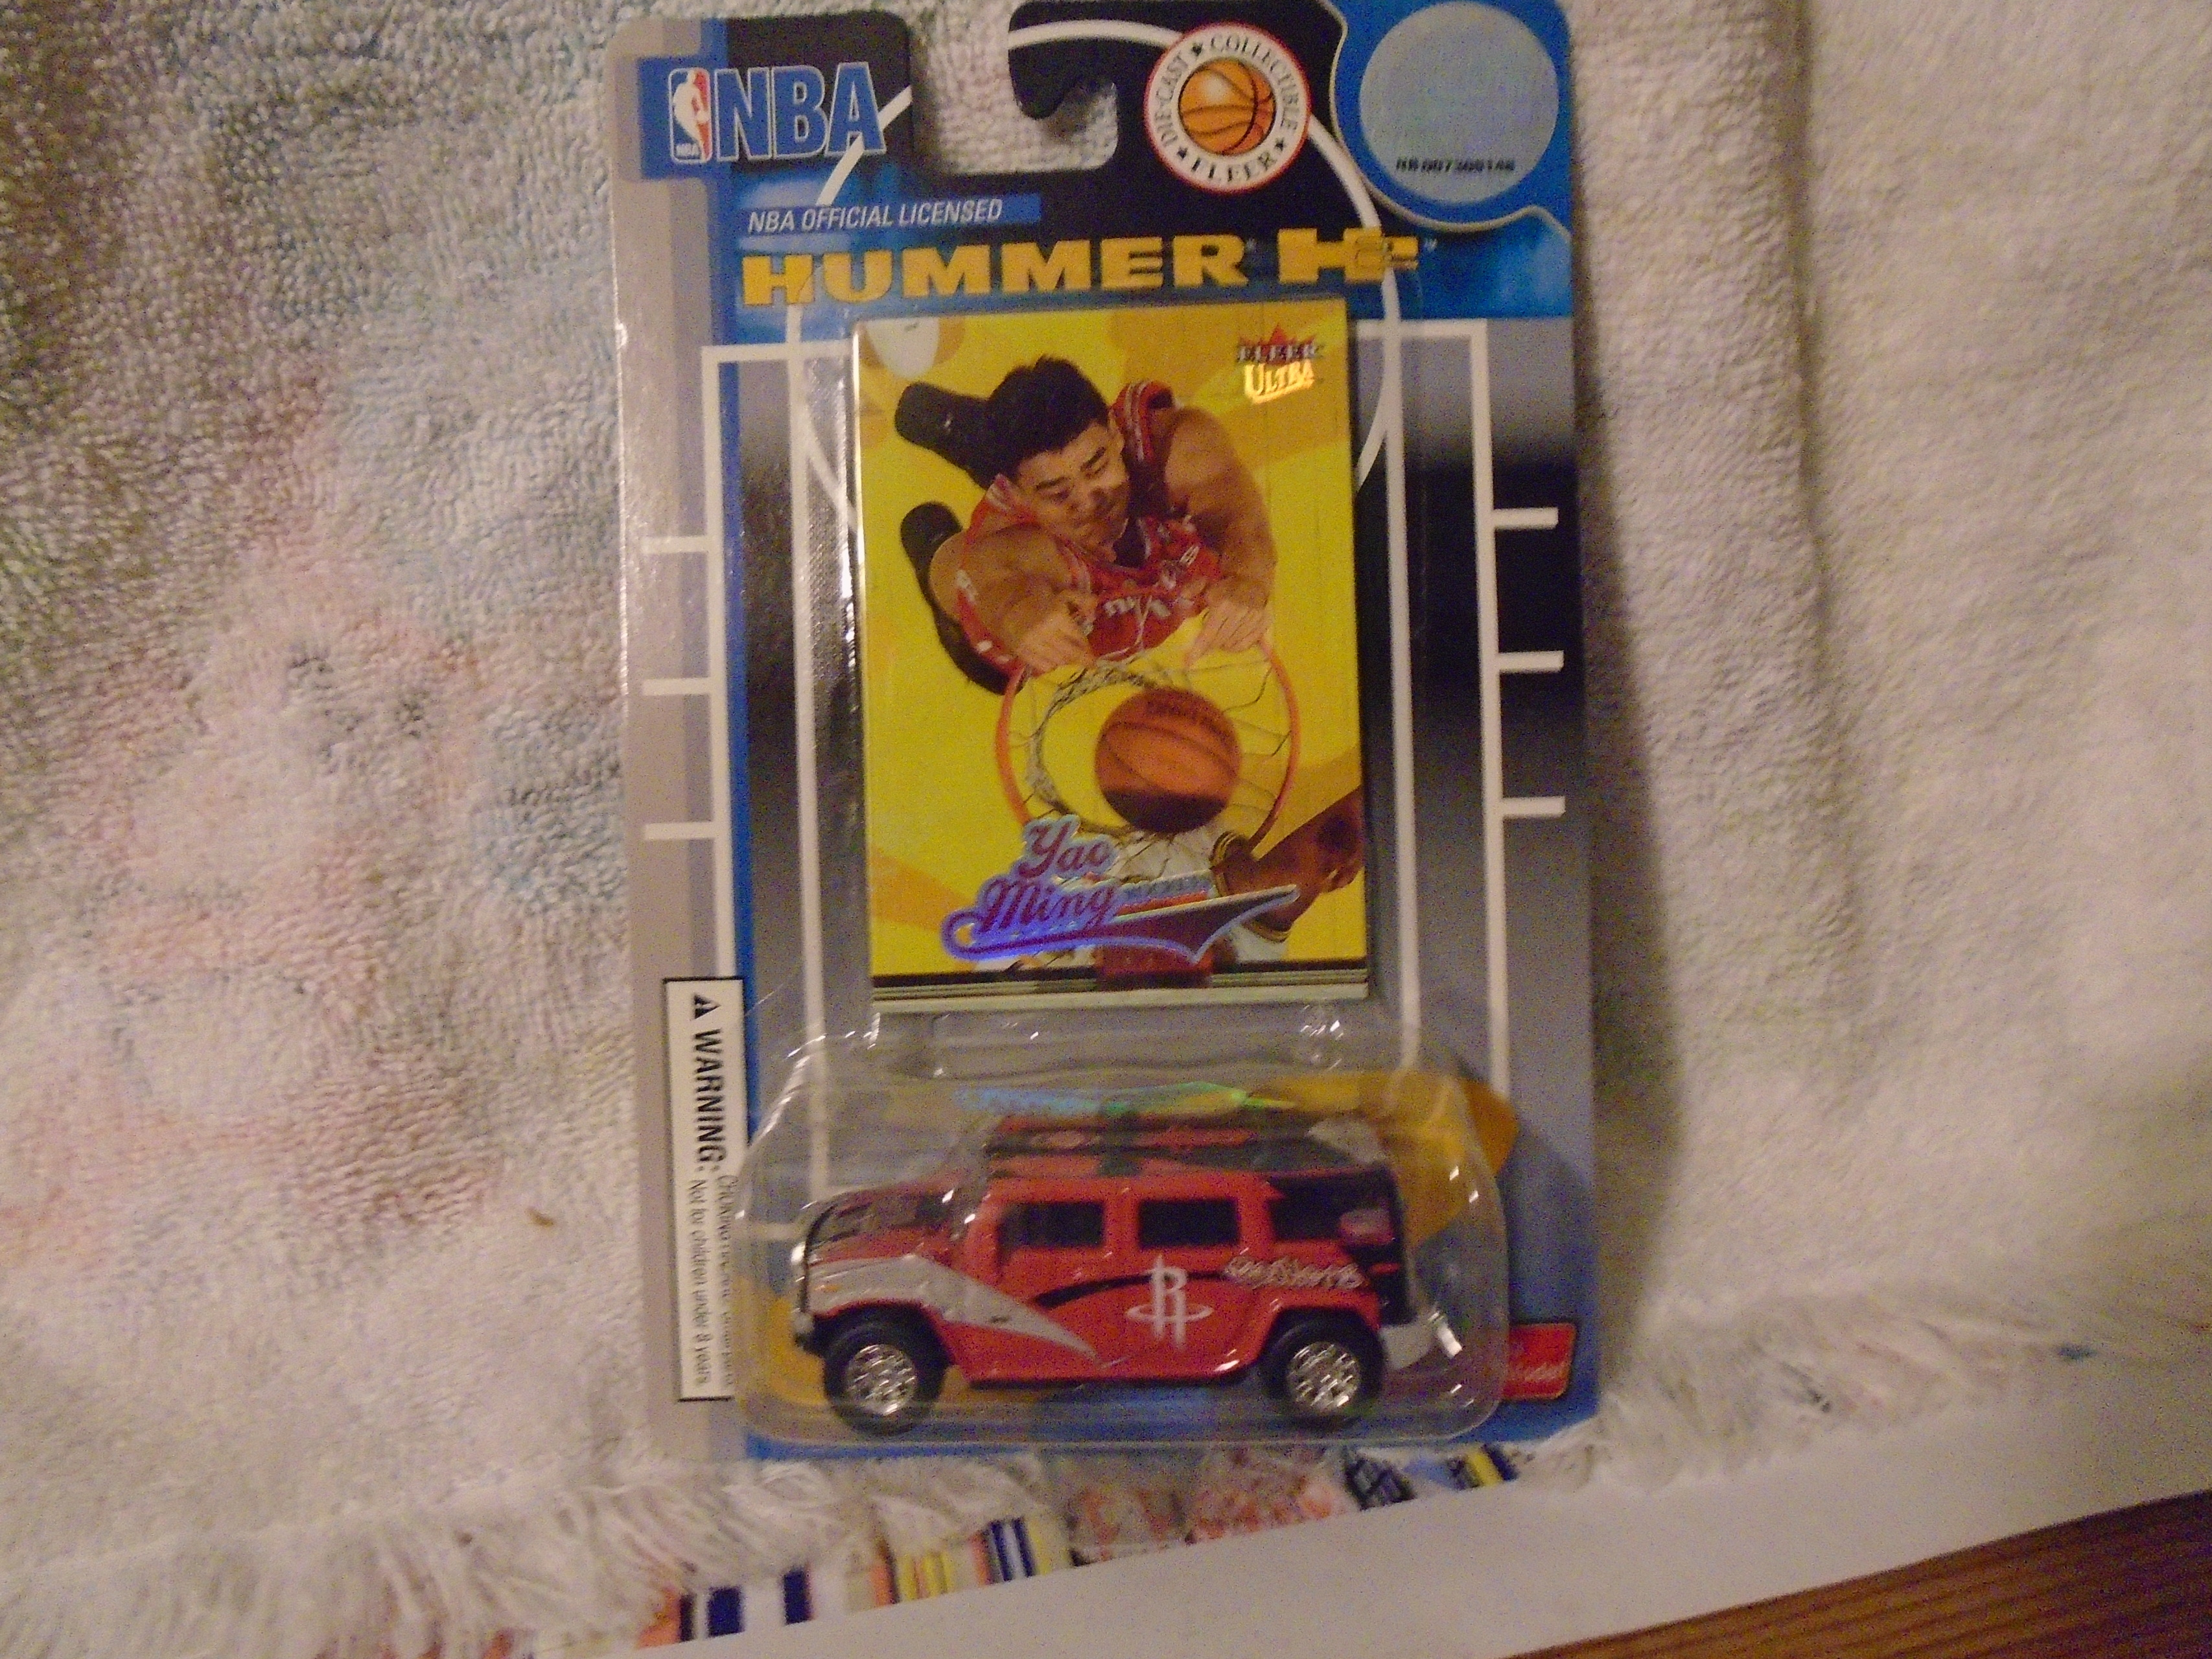 NBA YAO MING LIMTED EDITION 13:13 DIE-CAST HUMMER H13 WITH TRADING CARD | hummer card